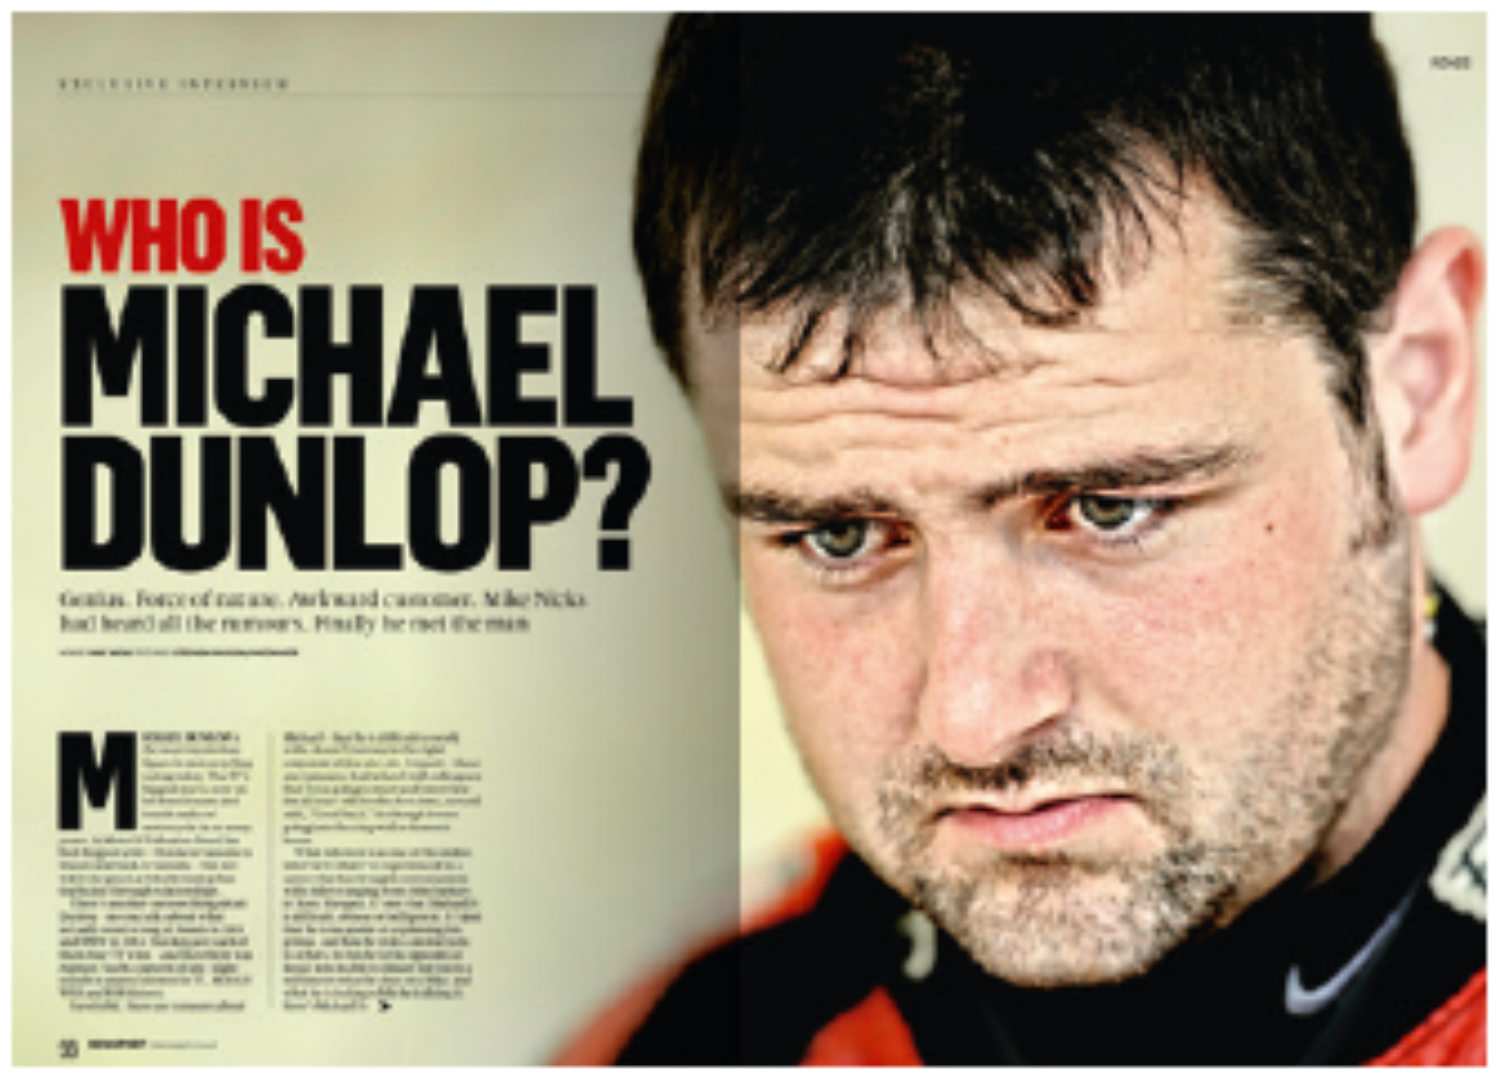 Who is Michael Dunlop?